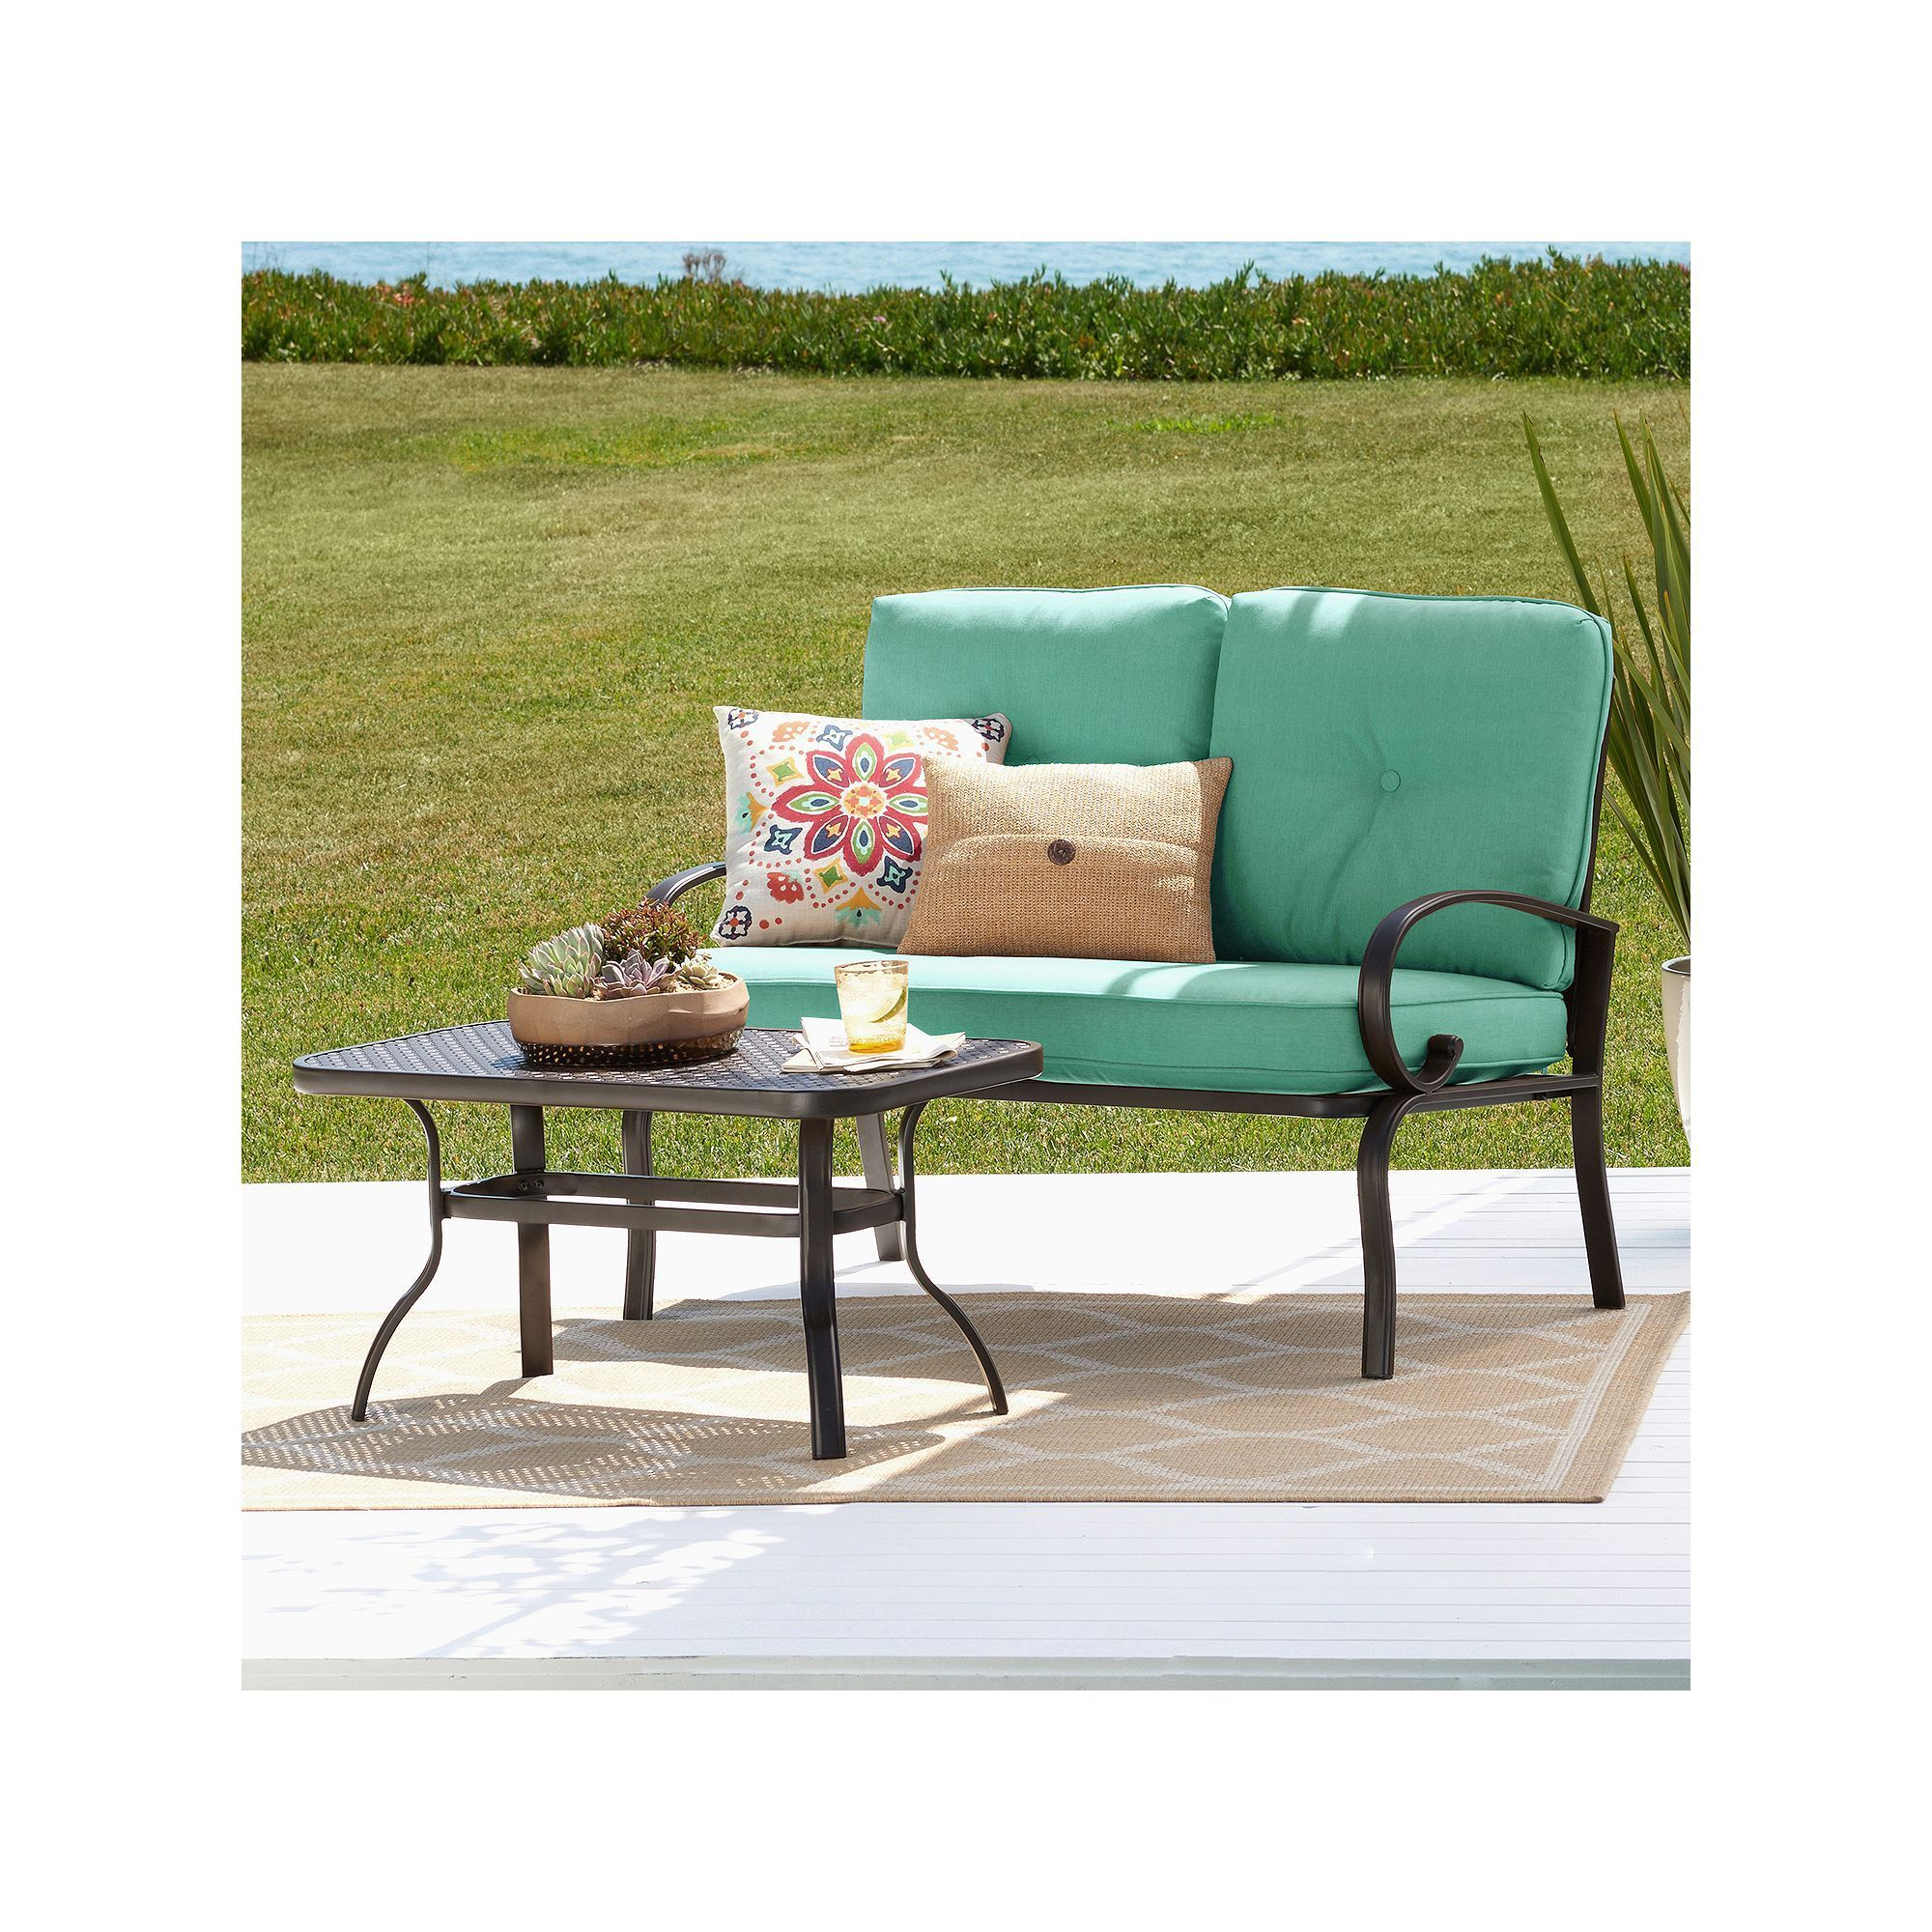 Outdoor Sonoma Goods For Life Claremont Patio Loveseat & Coffee